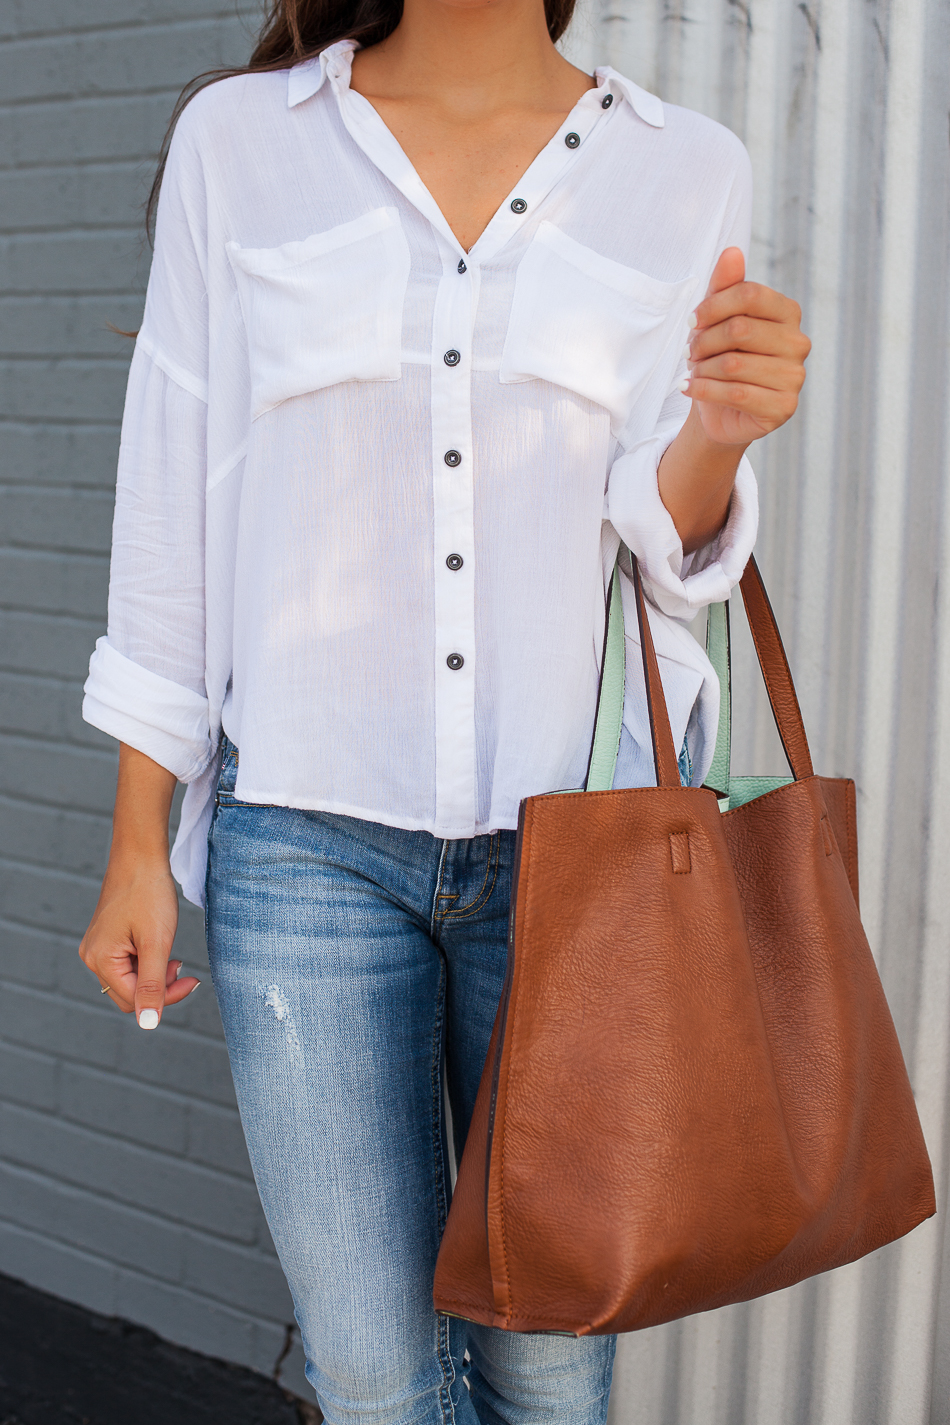 casual chic details